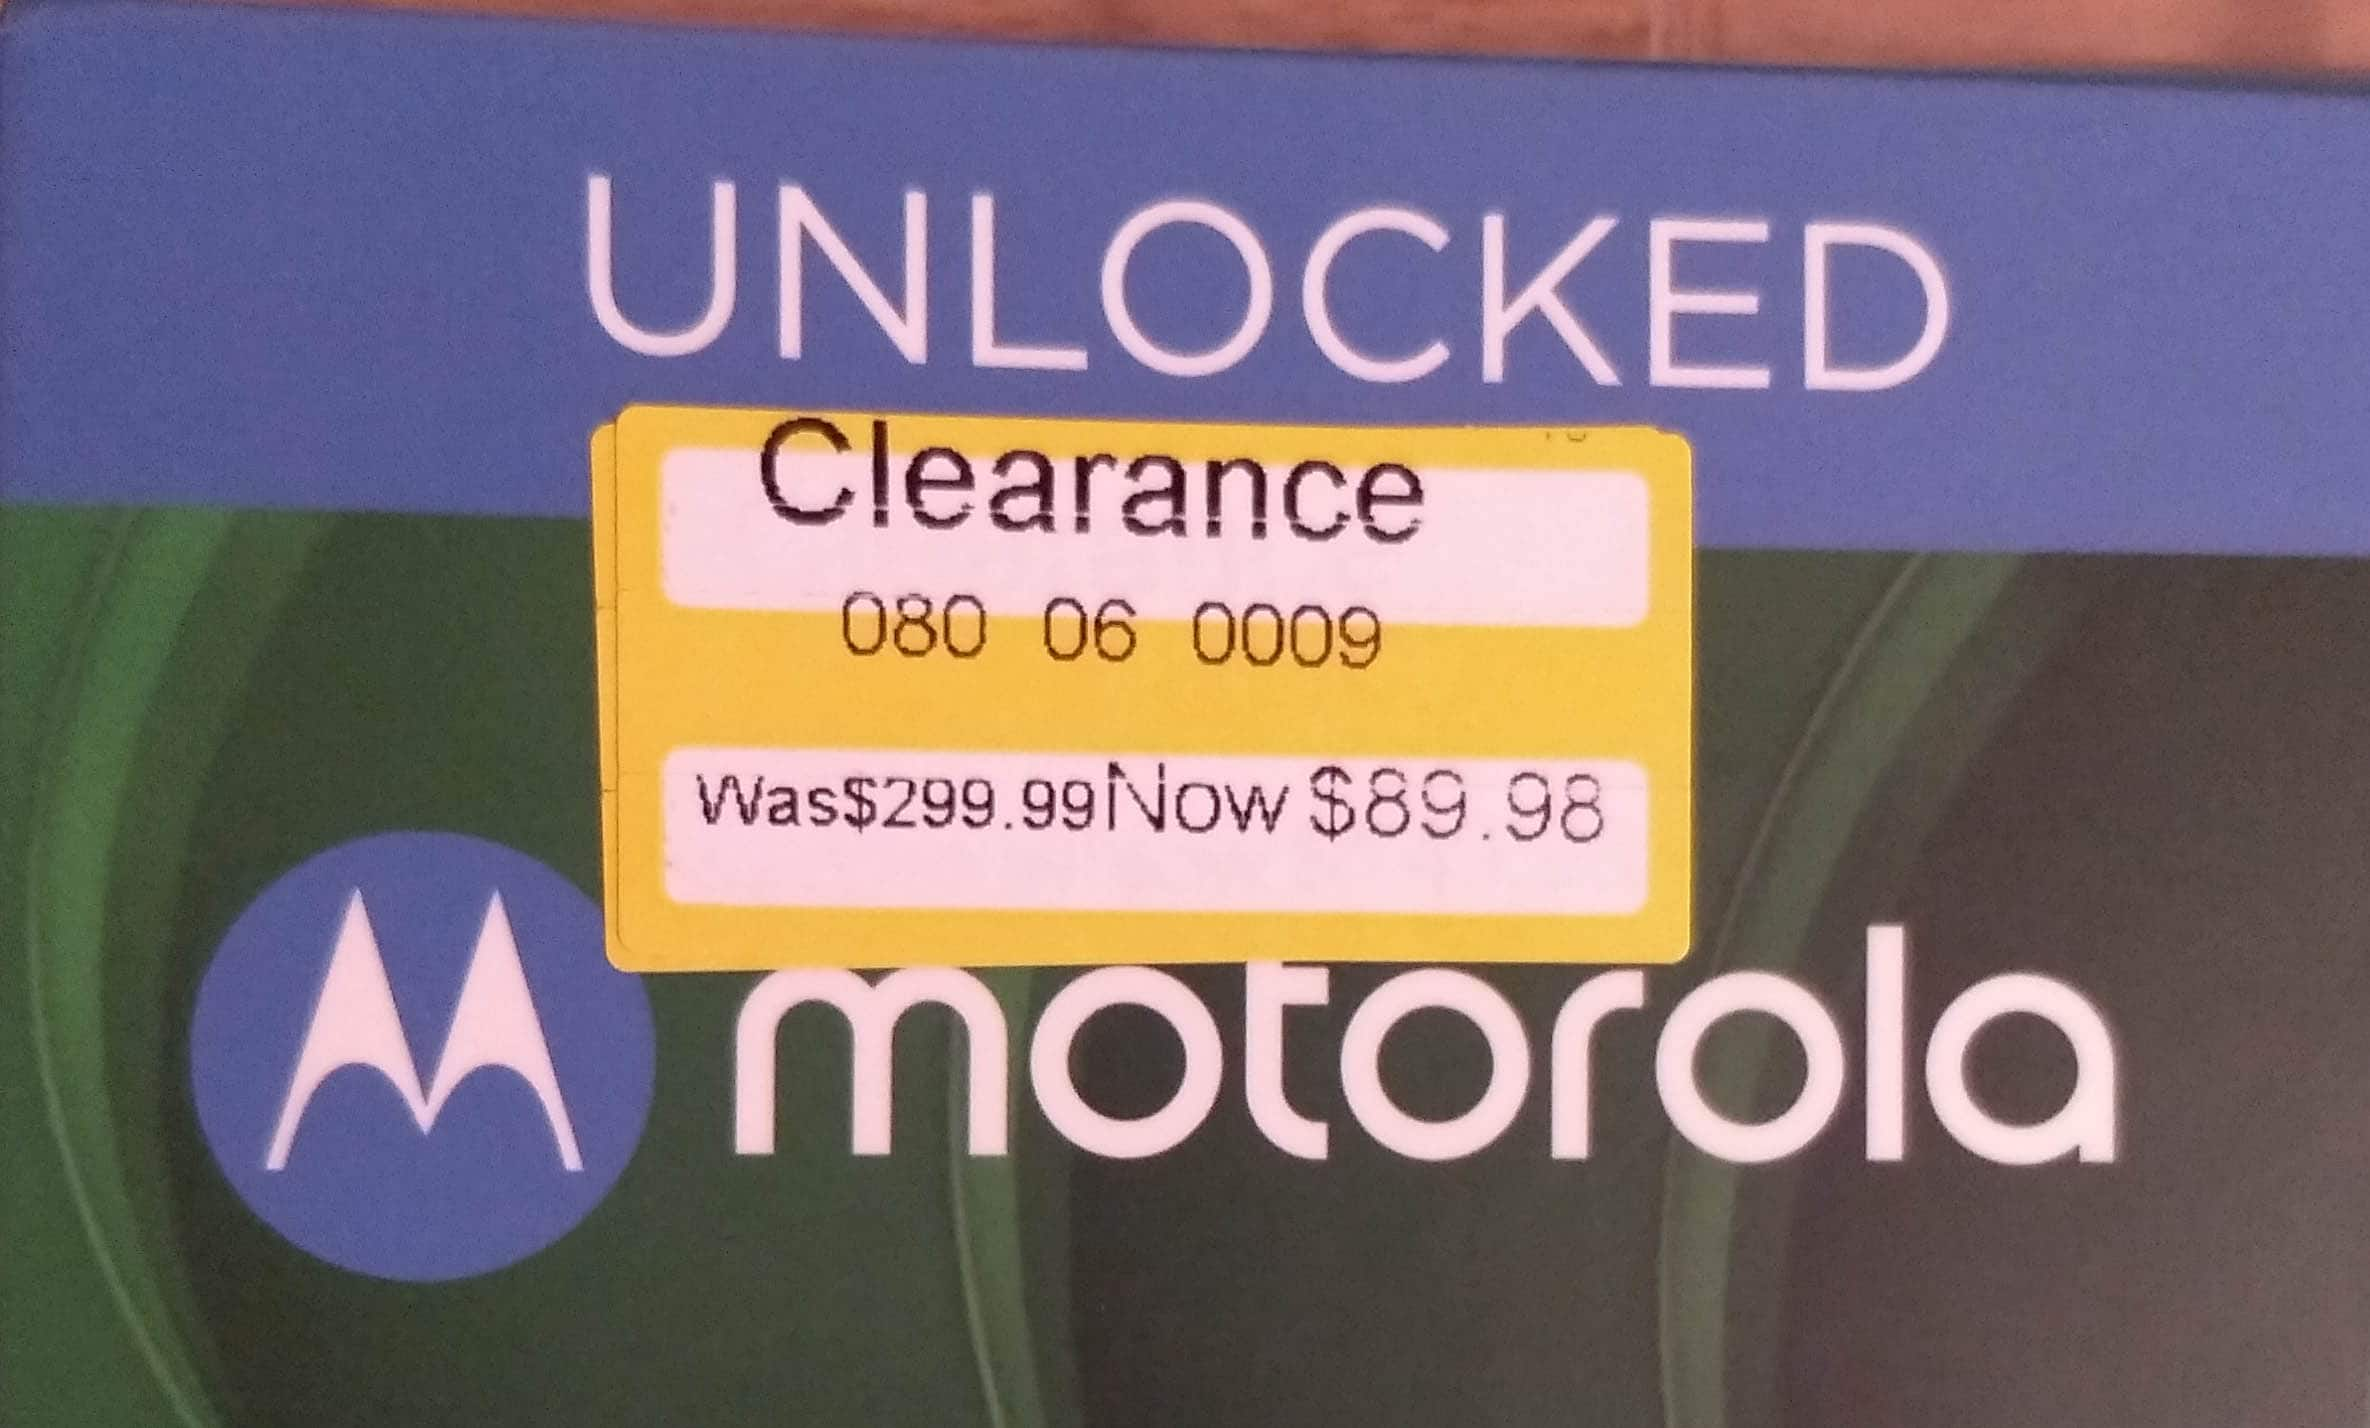 Motorola G7 phone UNLOCKED $89.98 or $149.98 on clearance @ Target. In-store only, YMMV